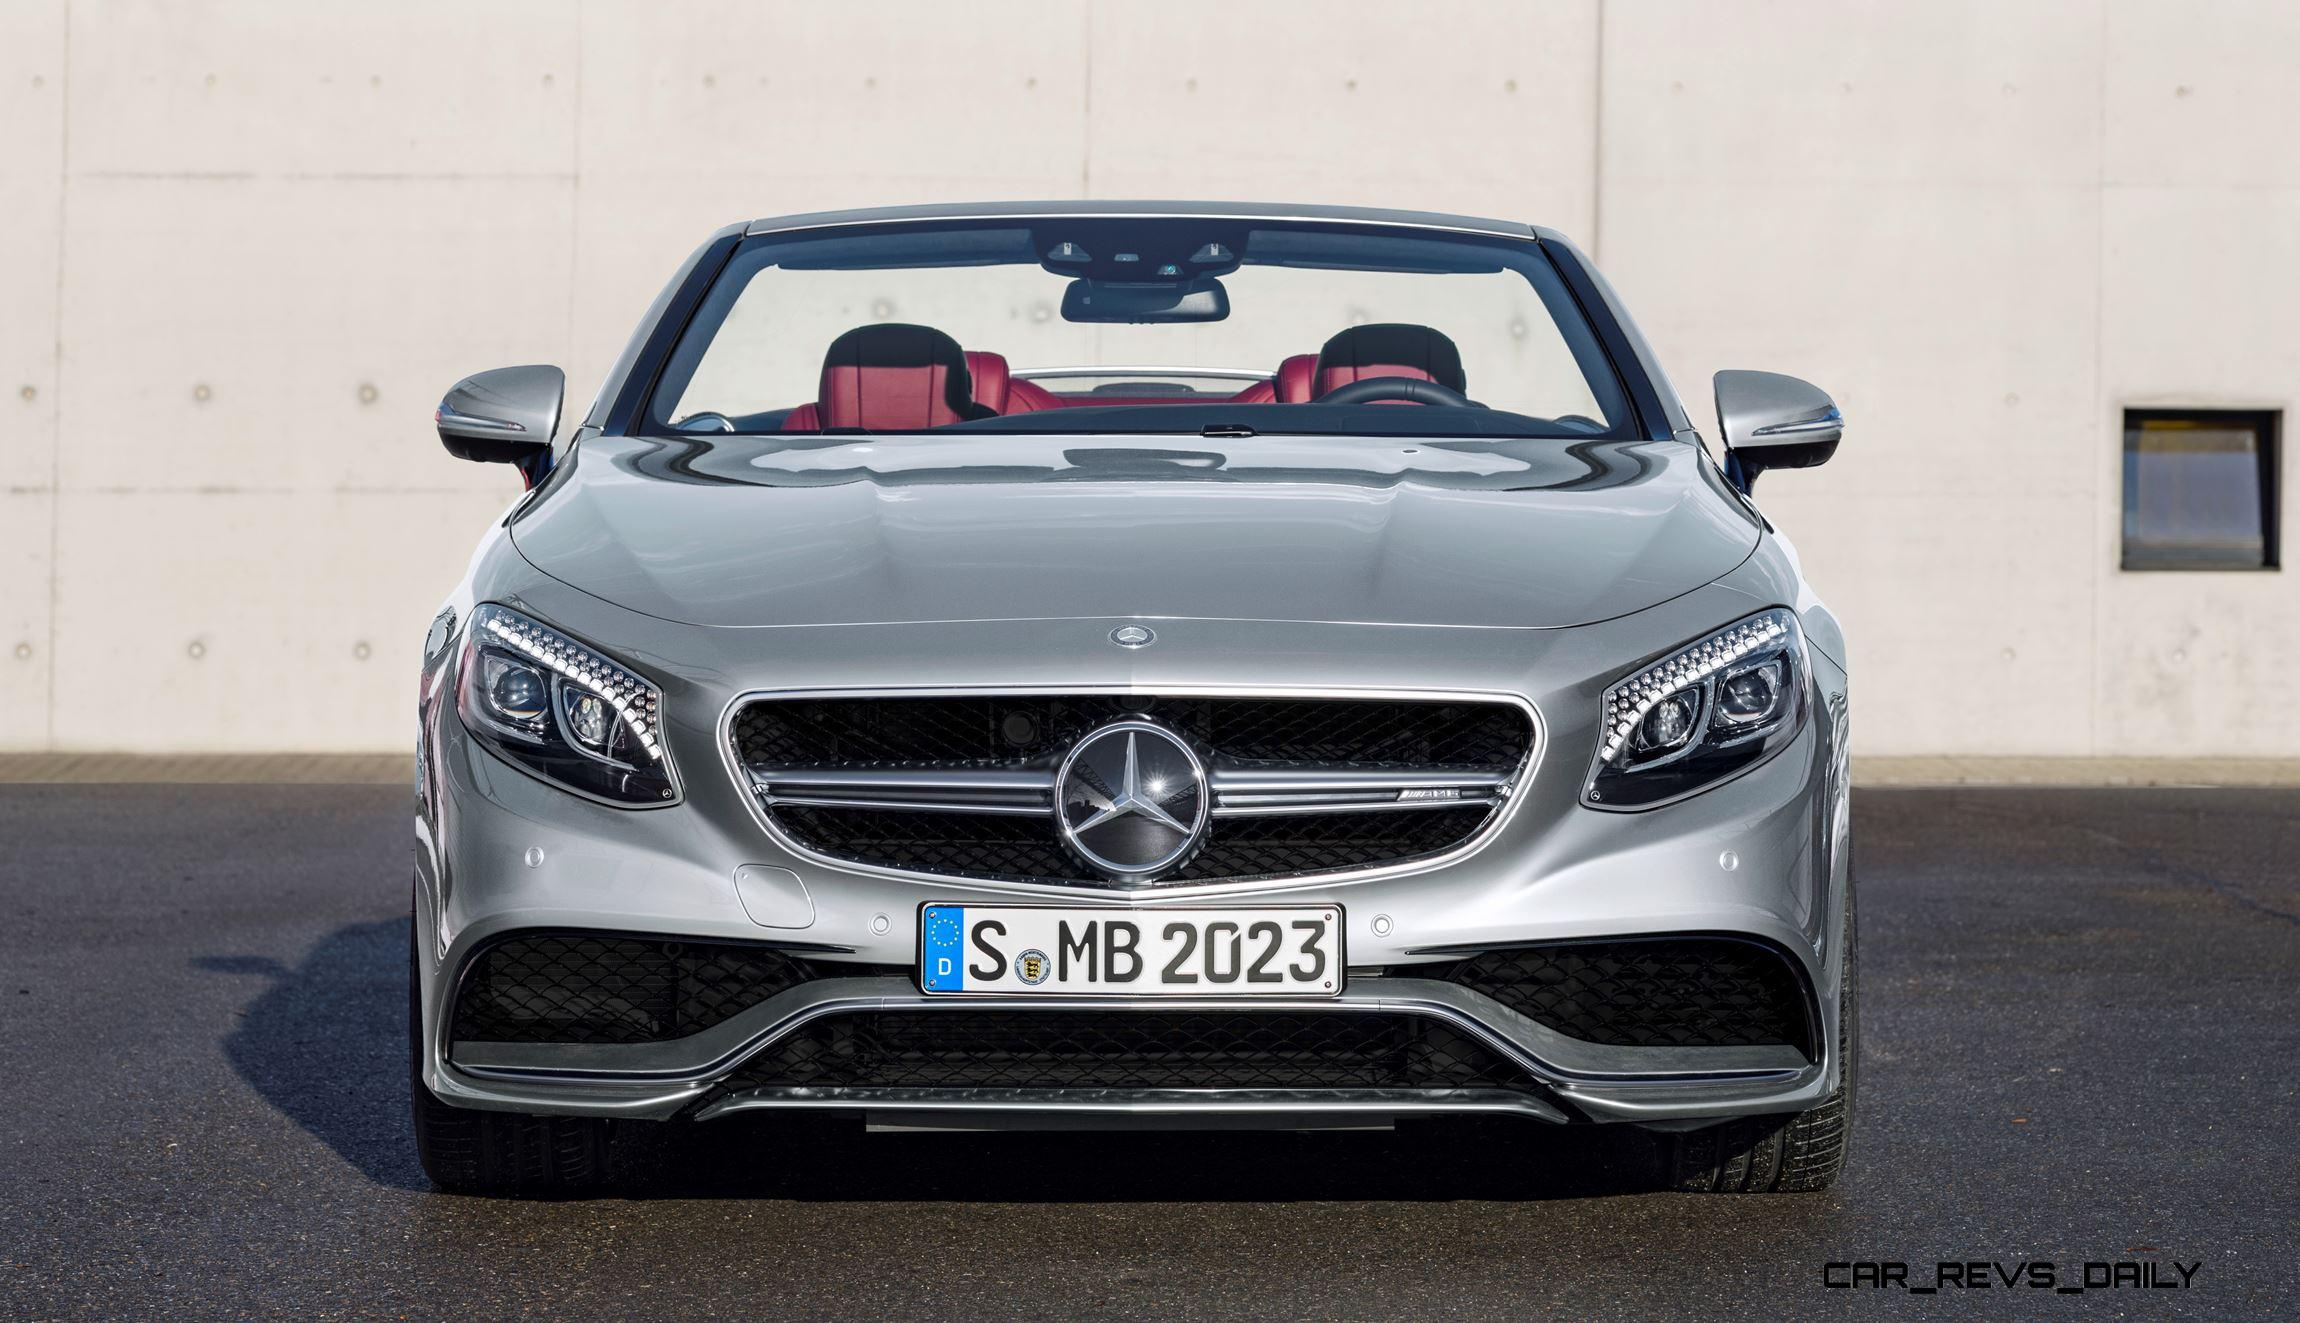 http://www.car-revs-daily.com/wp-content/uploads/2016-Mercedes-AMG-S63-4MATIC-Cabriolet-Edition-130-7.jpg